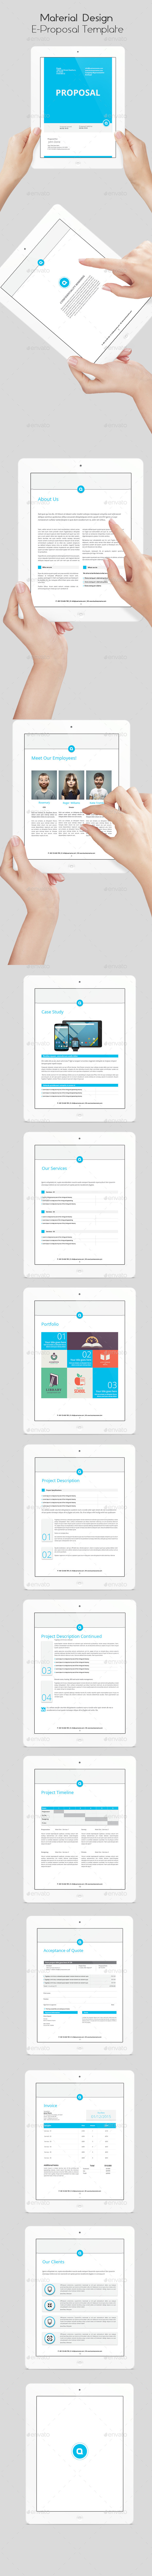 GraphicRiver Material Design E-Book Proposal 10664943